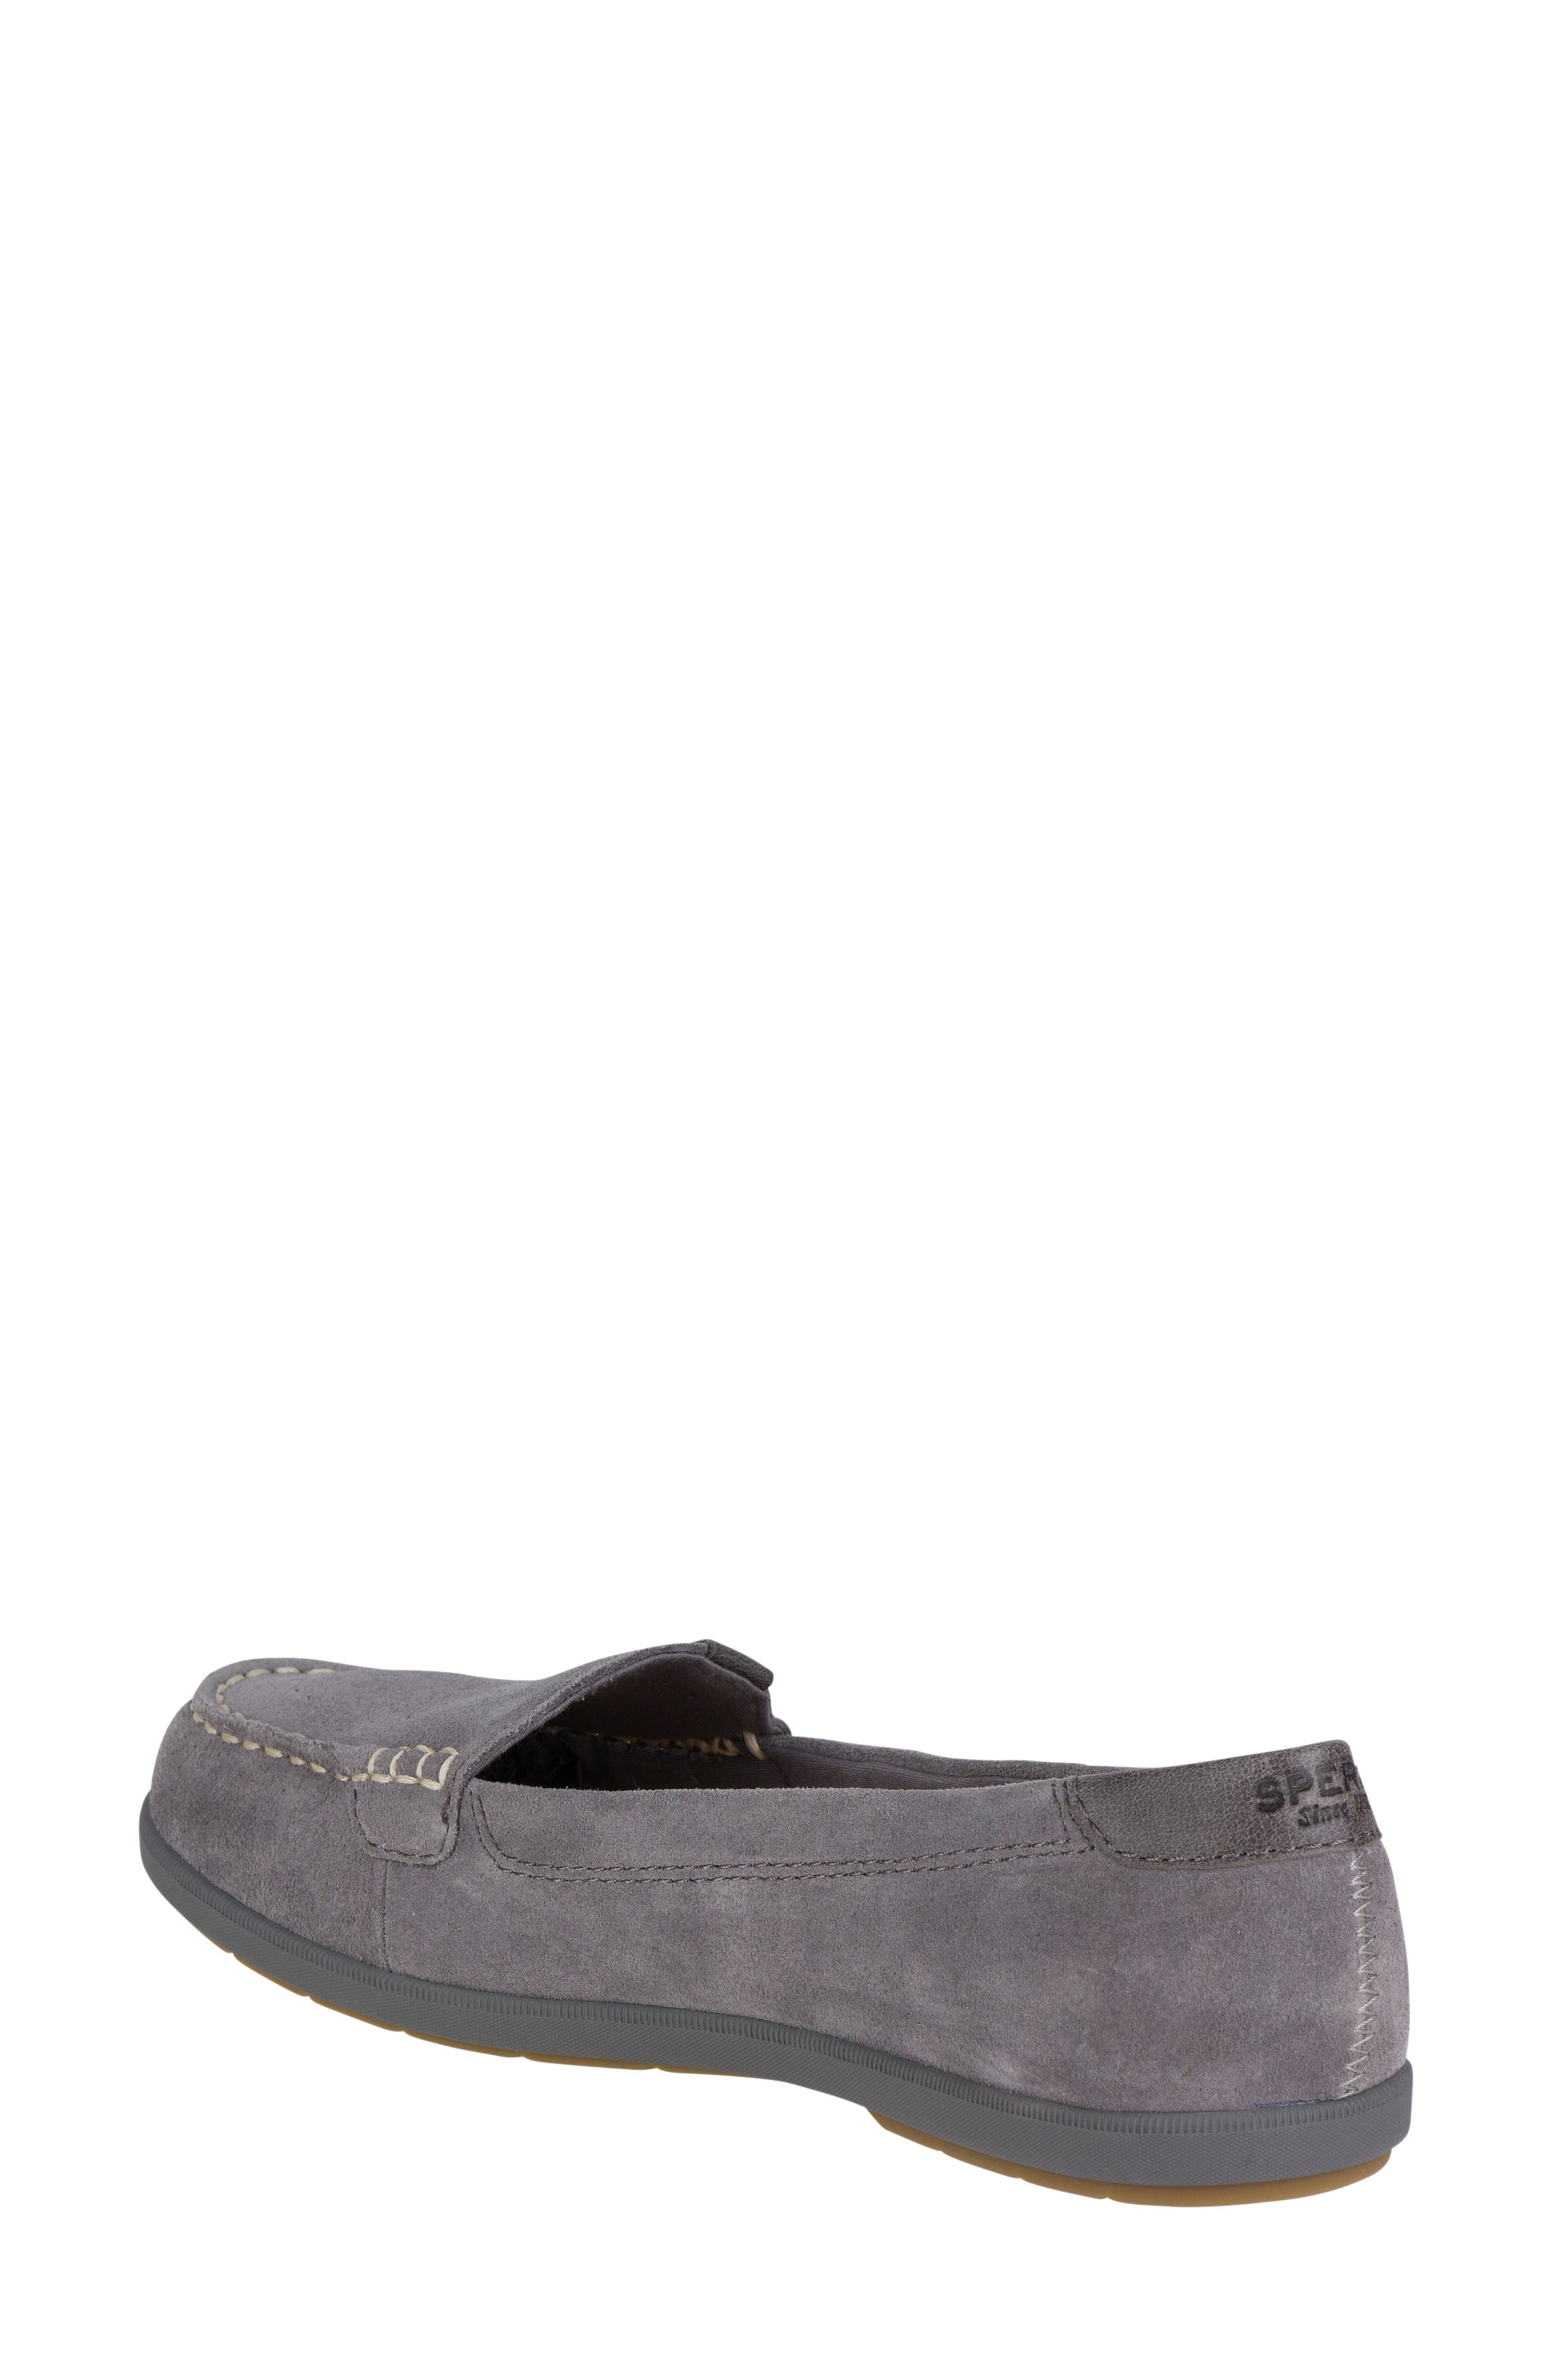 Coil Mia Loafer,                             Alternate thumbnail 7, color,